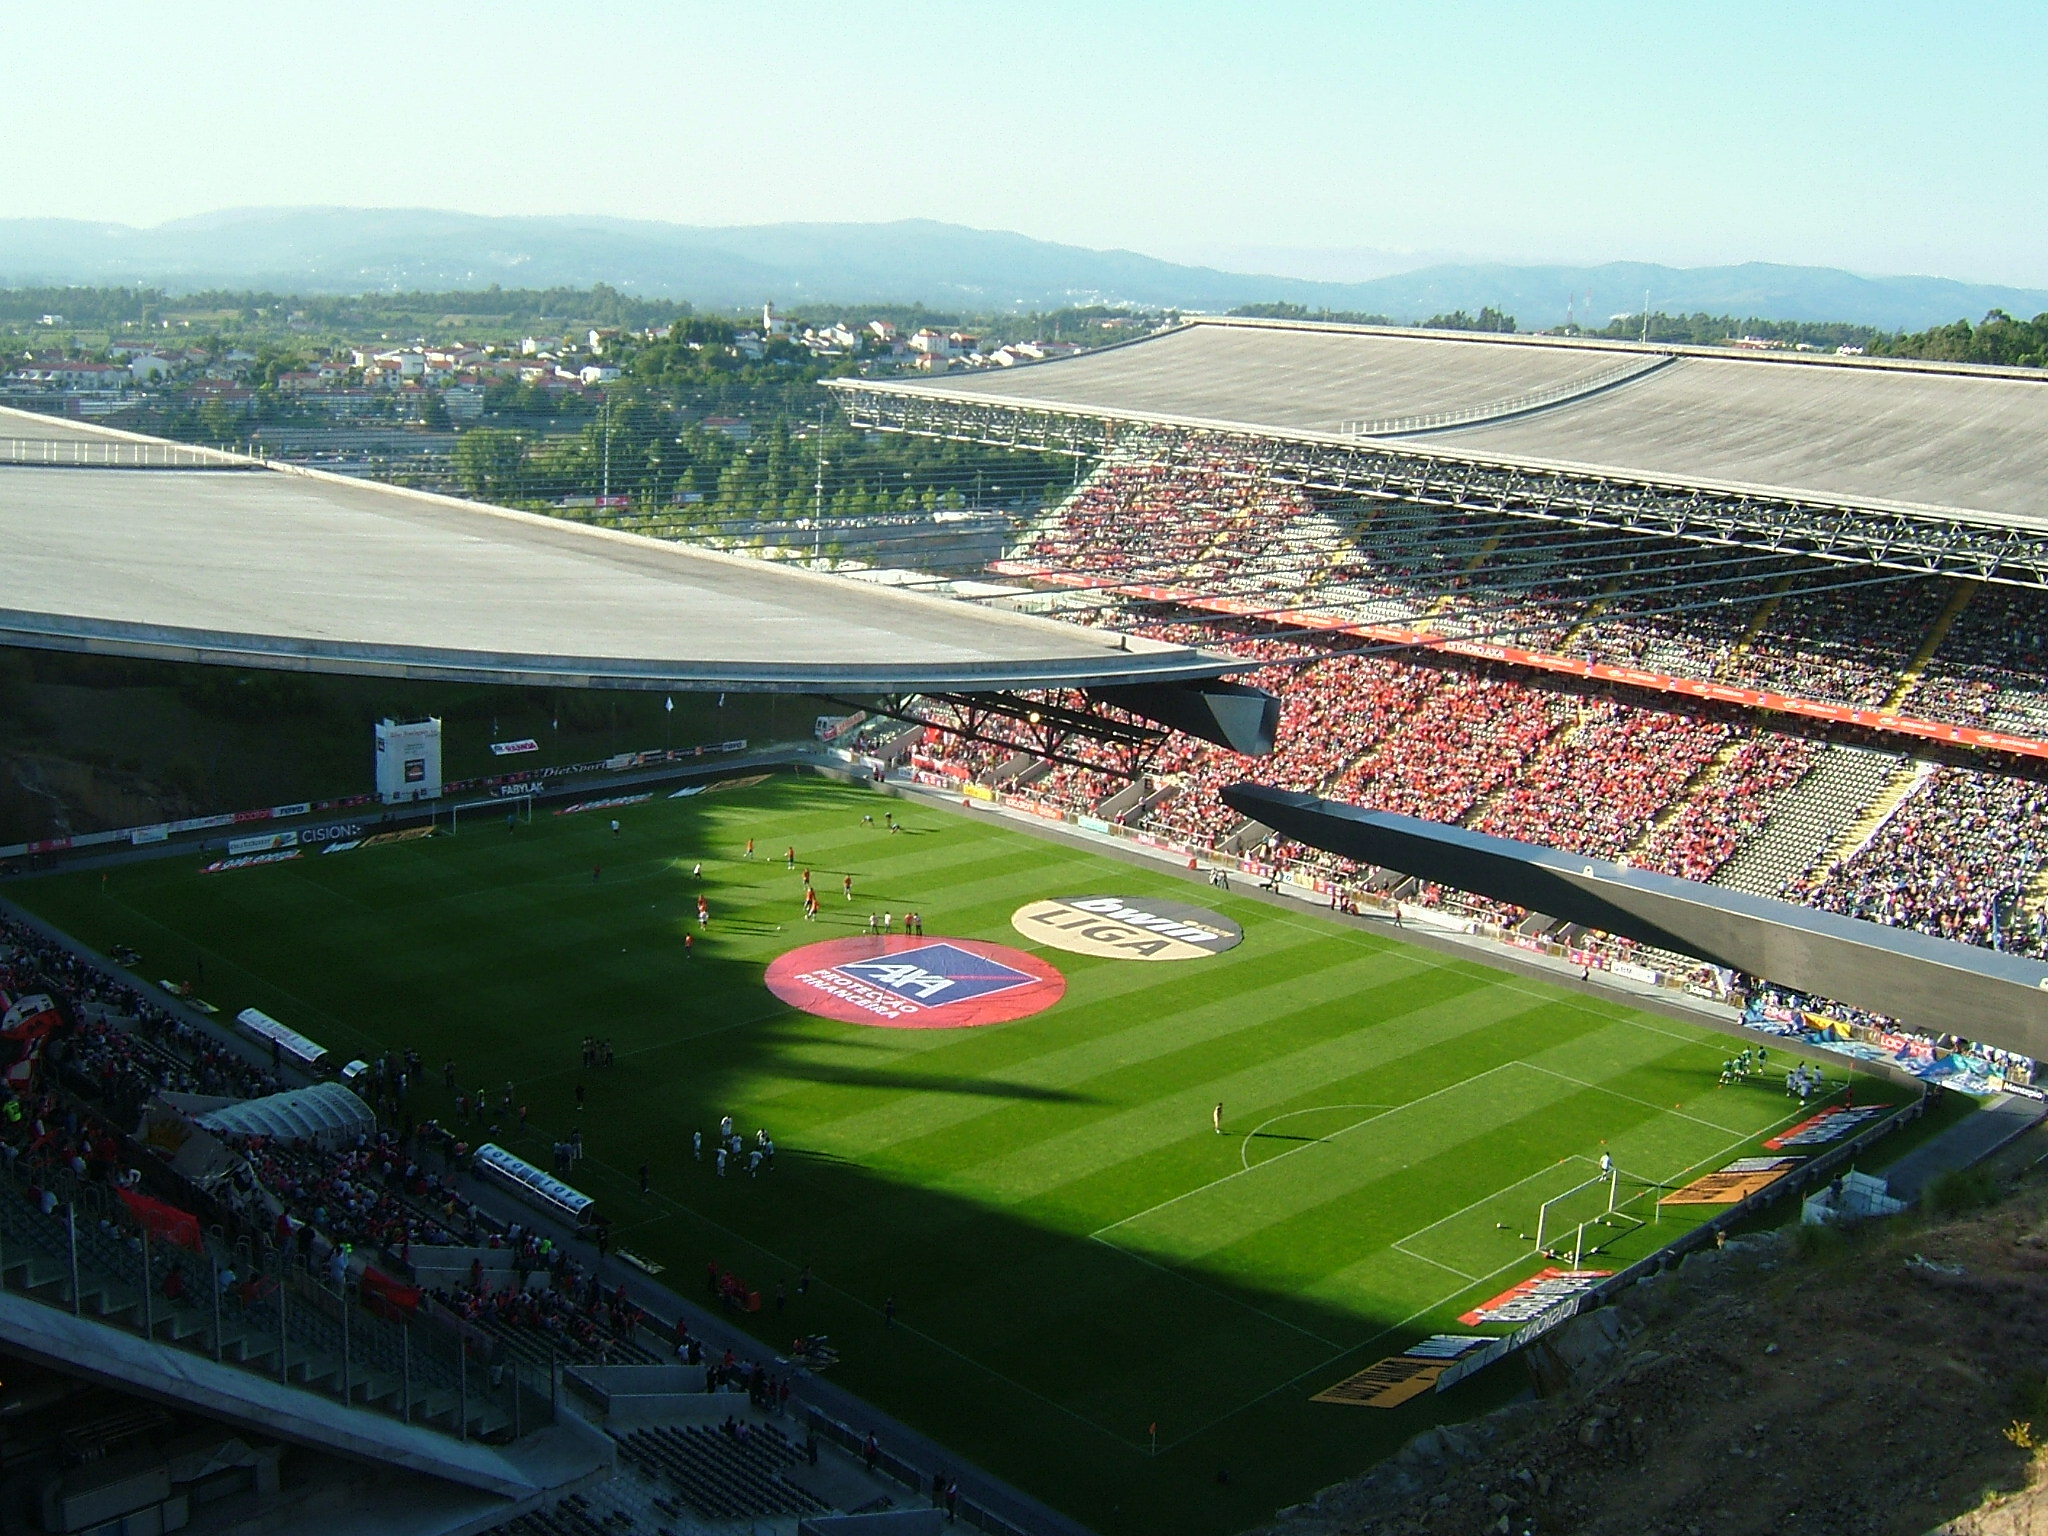 Braga Municipal Stadium, a marvel of modern engineering